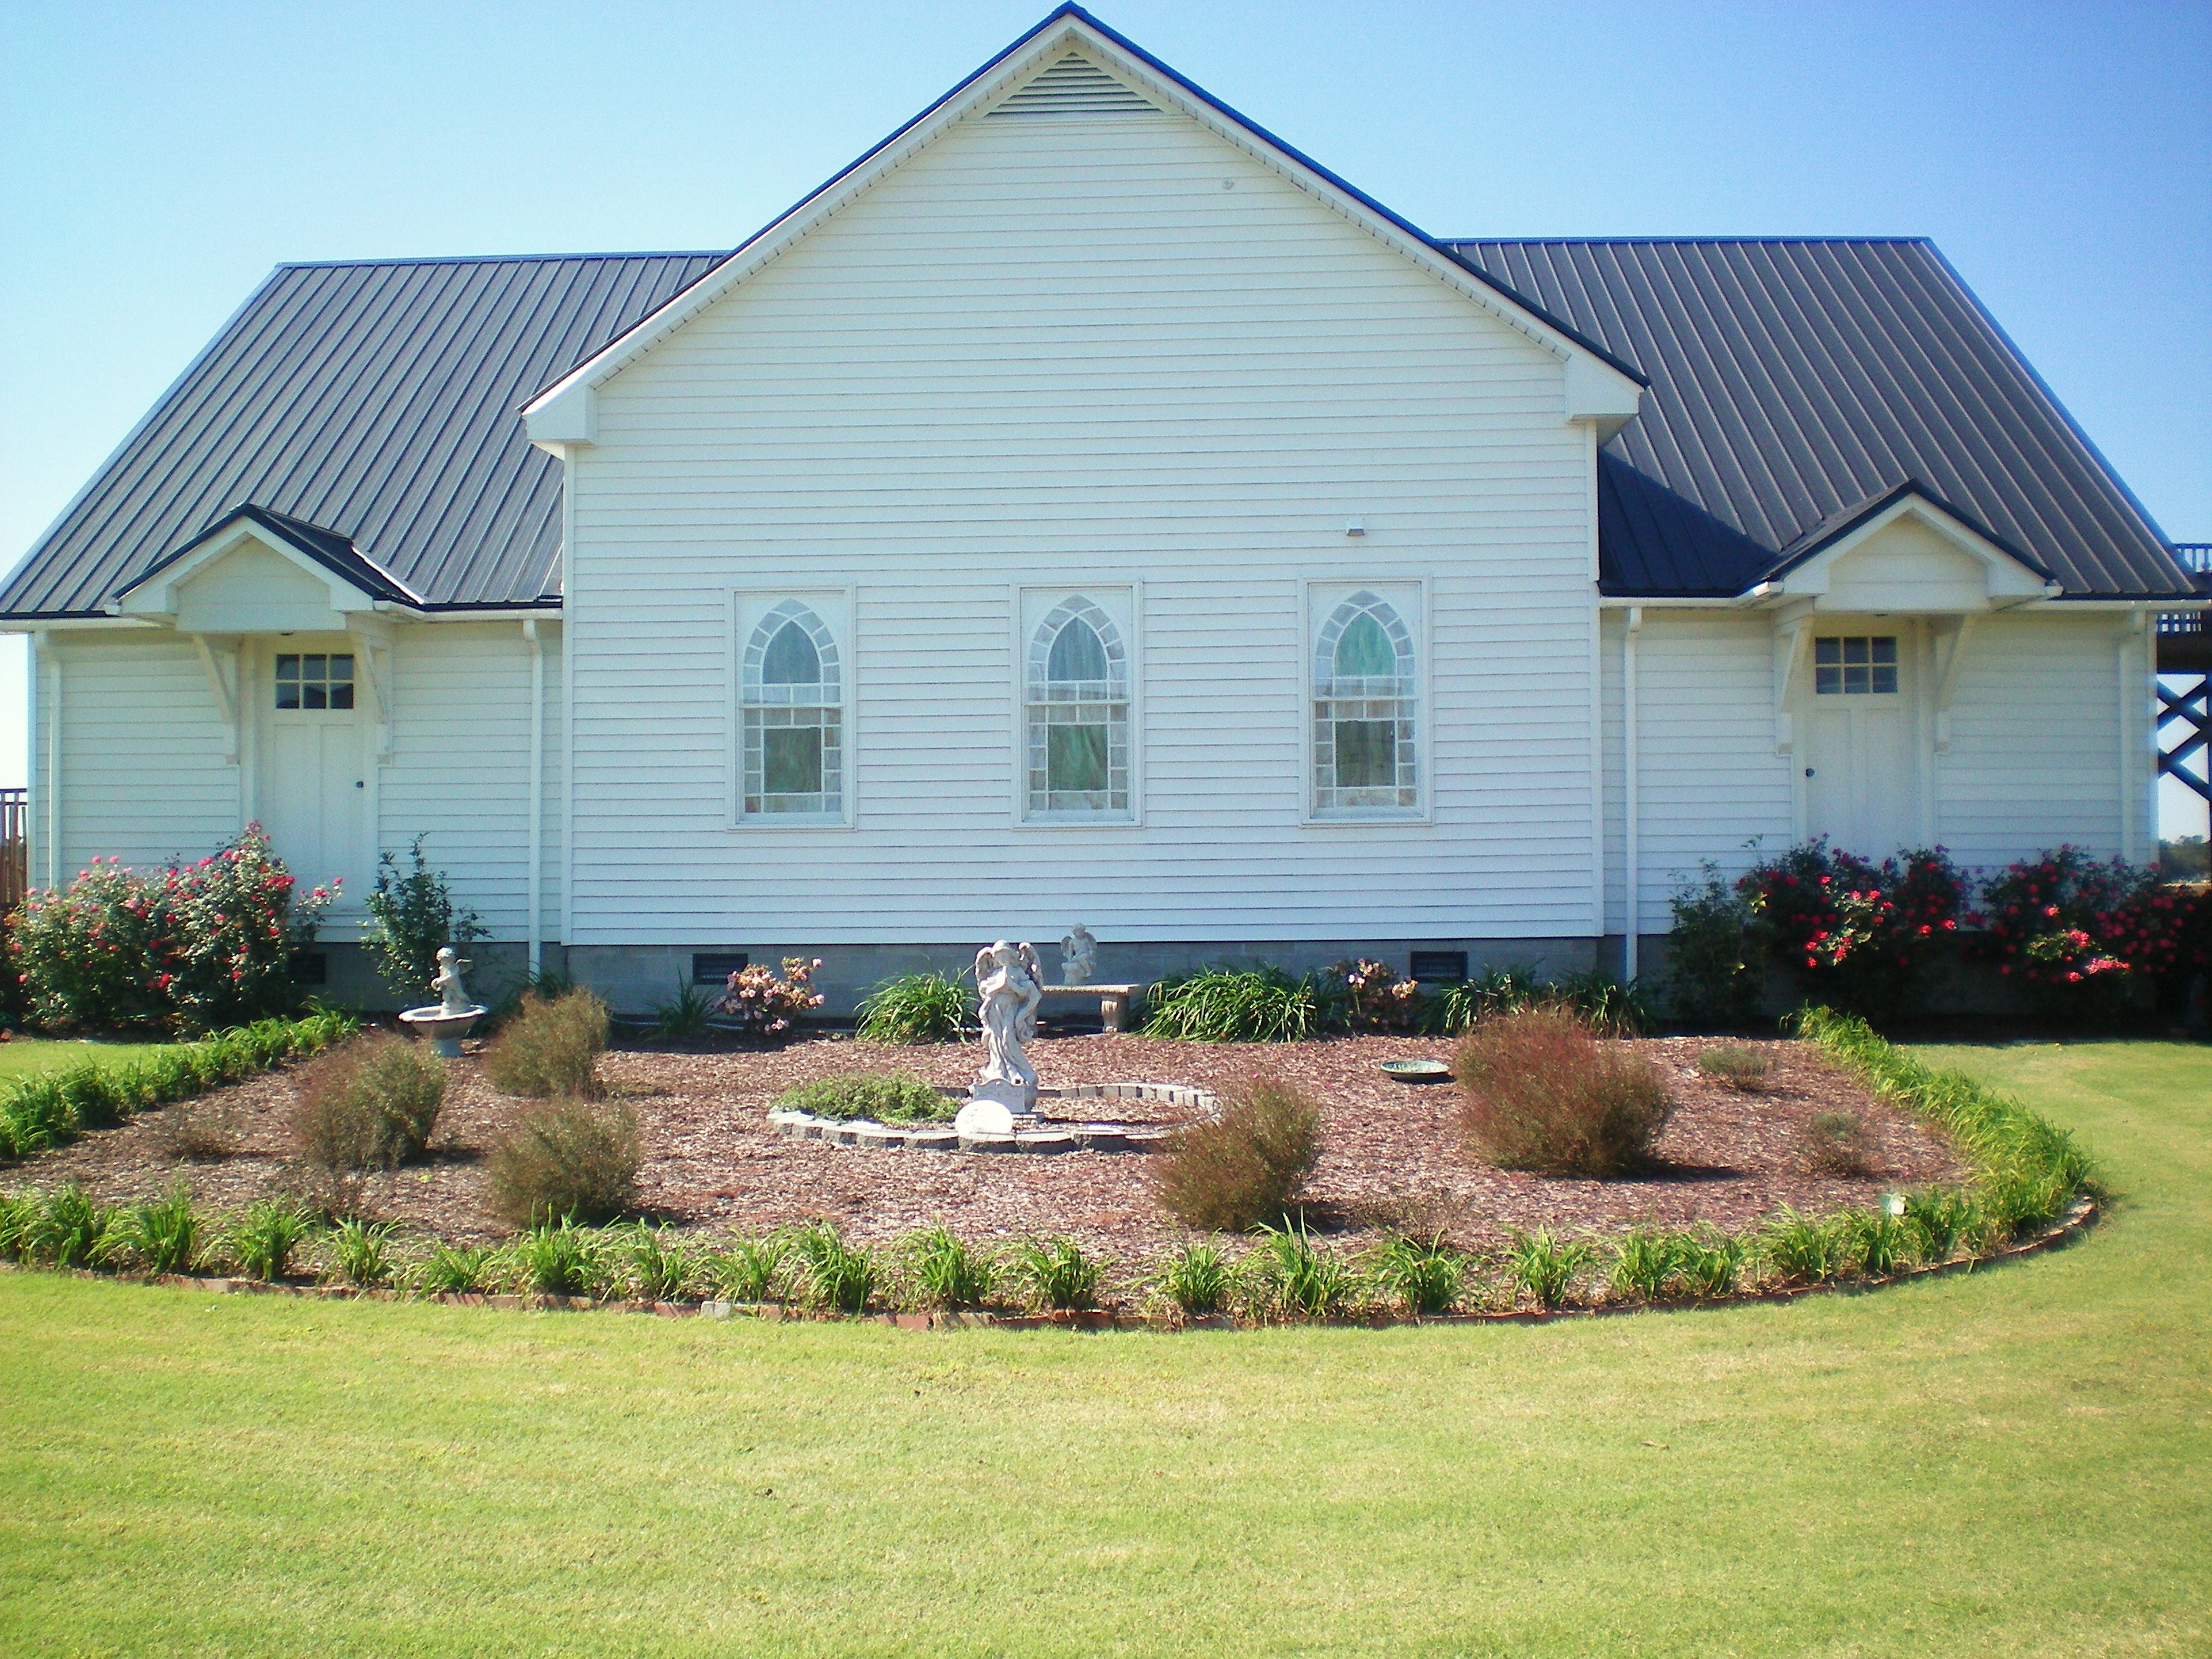 Heritage Hall is an event venue at Hamstead Acres